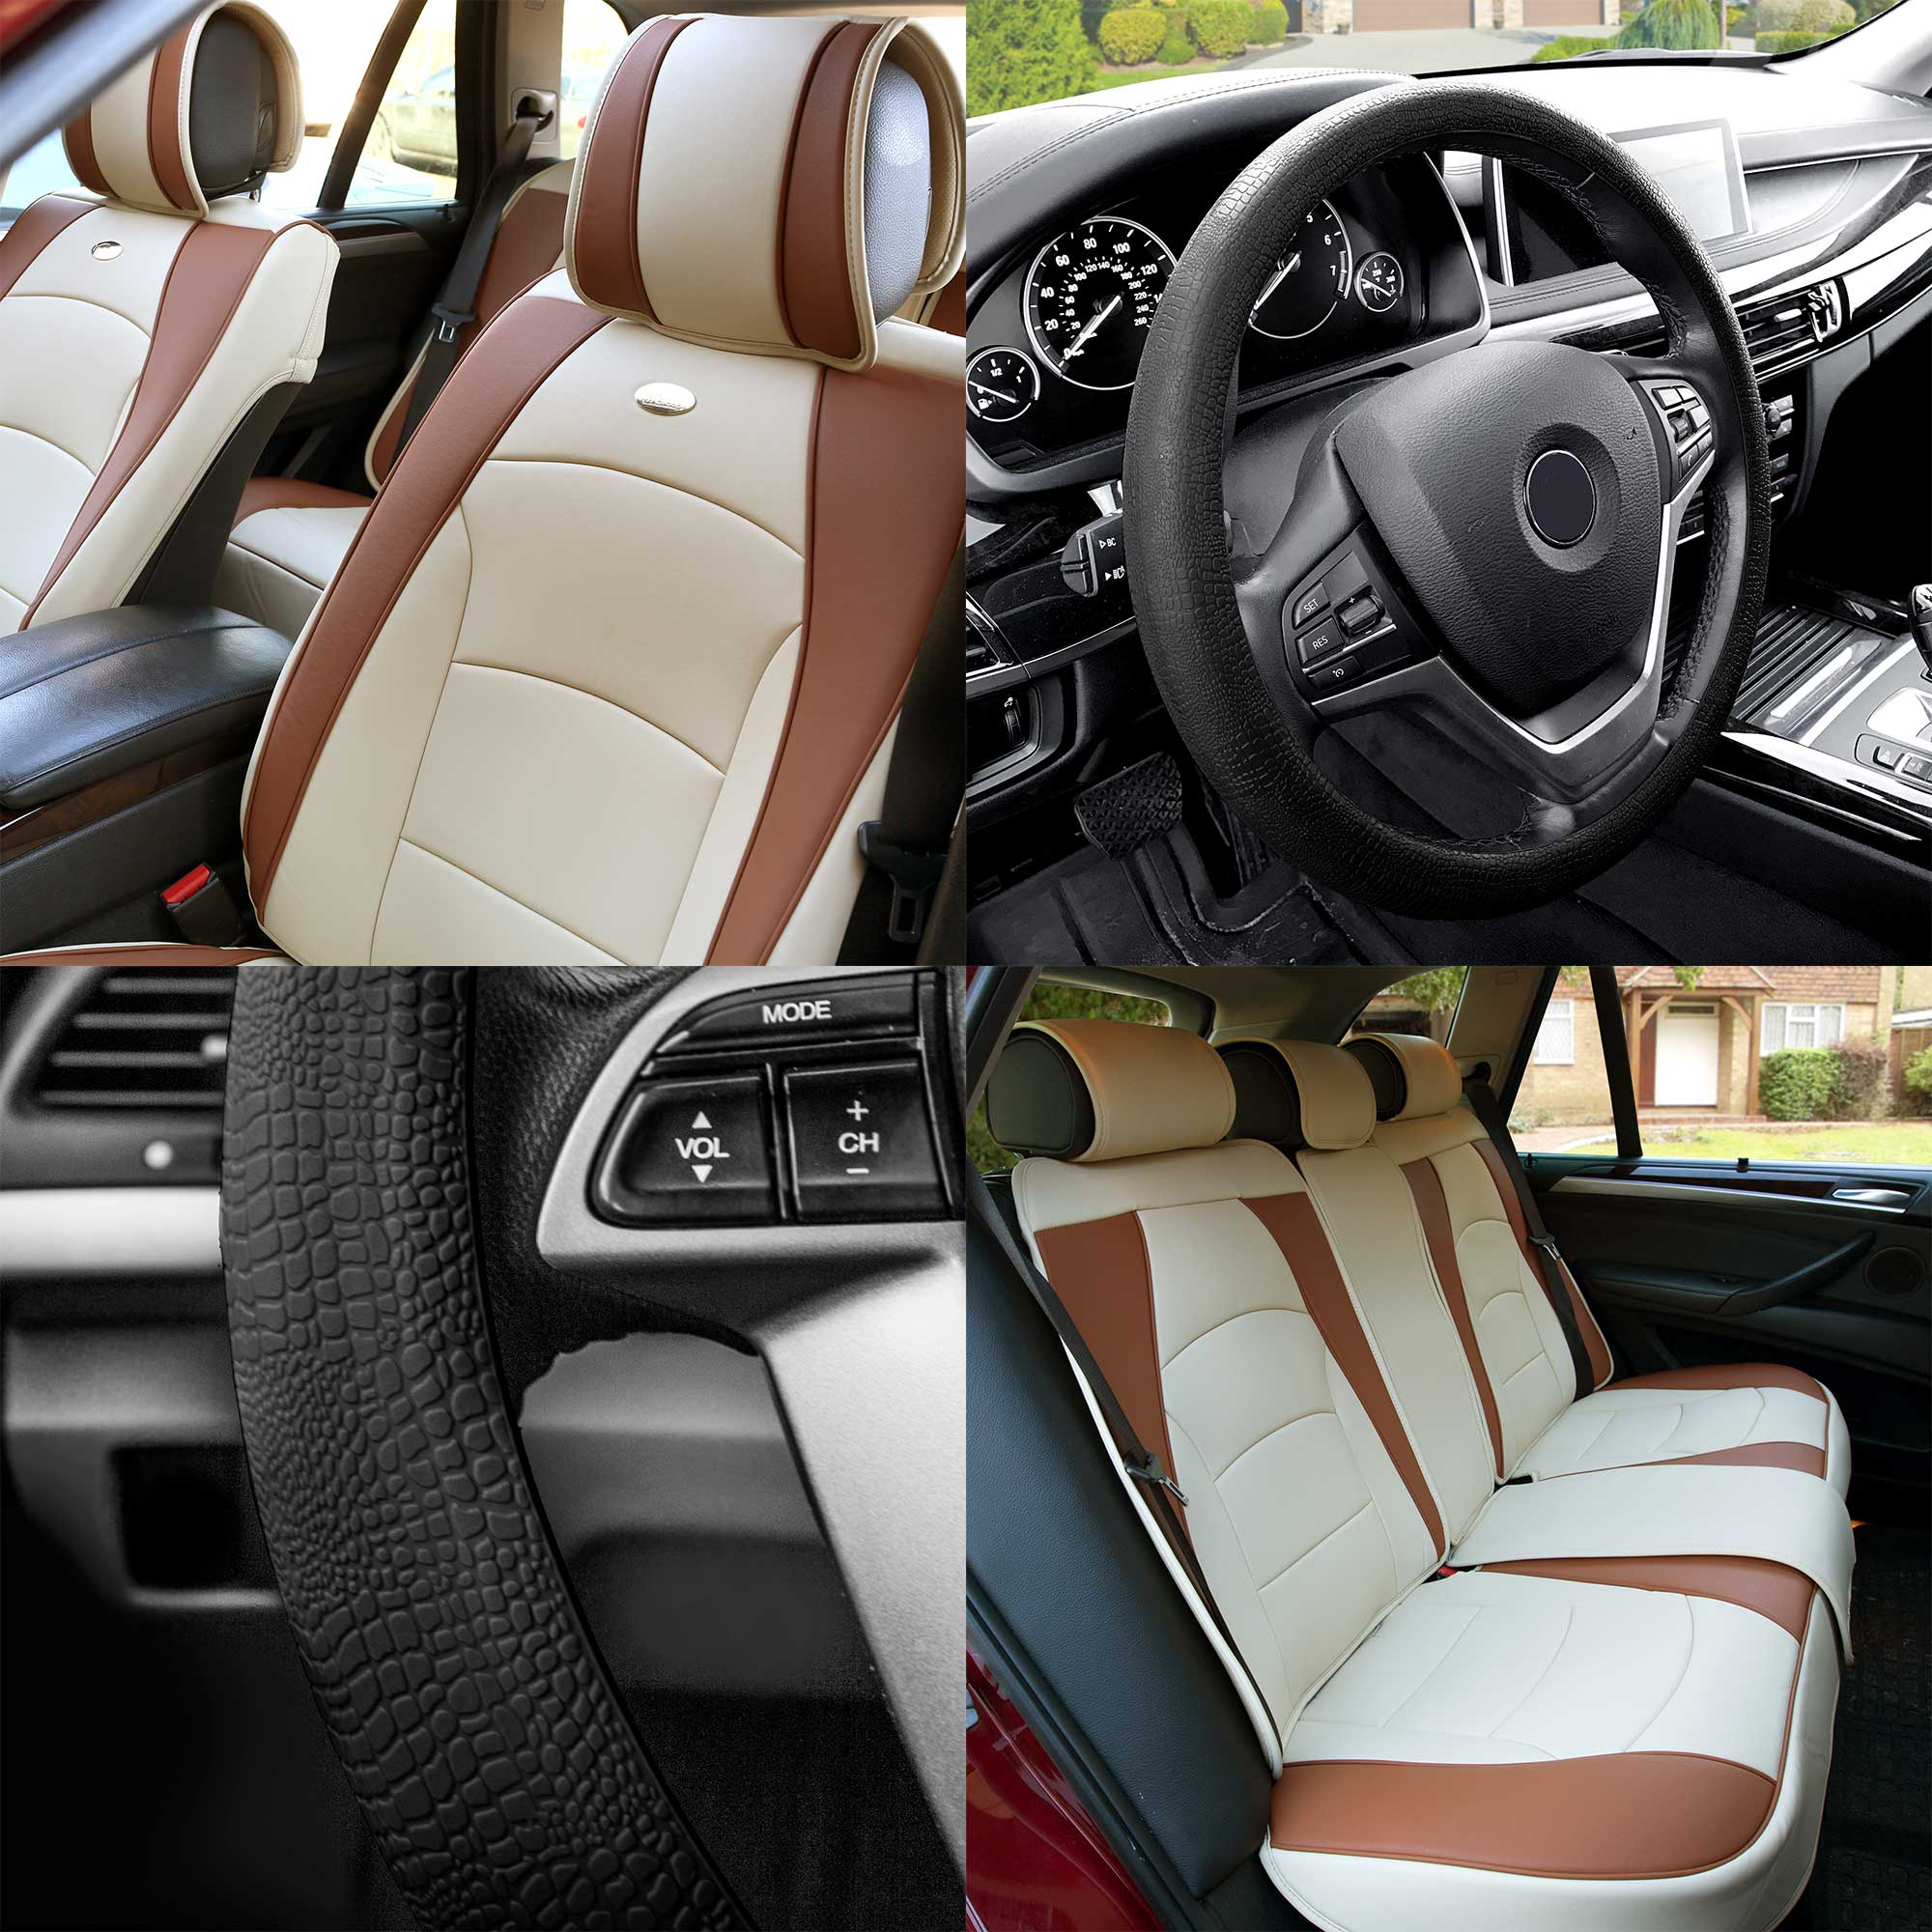 Bmw X1 Full Set Luxury Beige Black Leather Look Car Seat Covers Archives Statelegals Staradvertiser Com